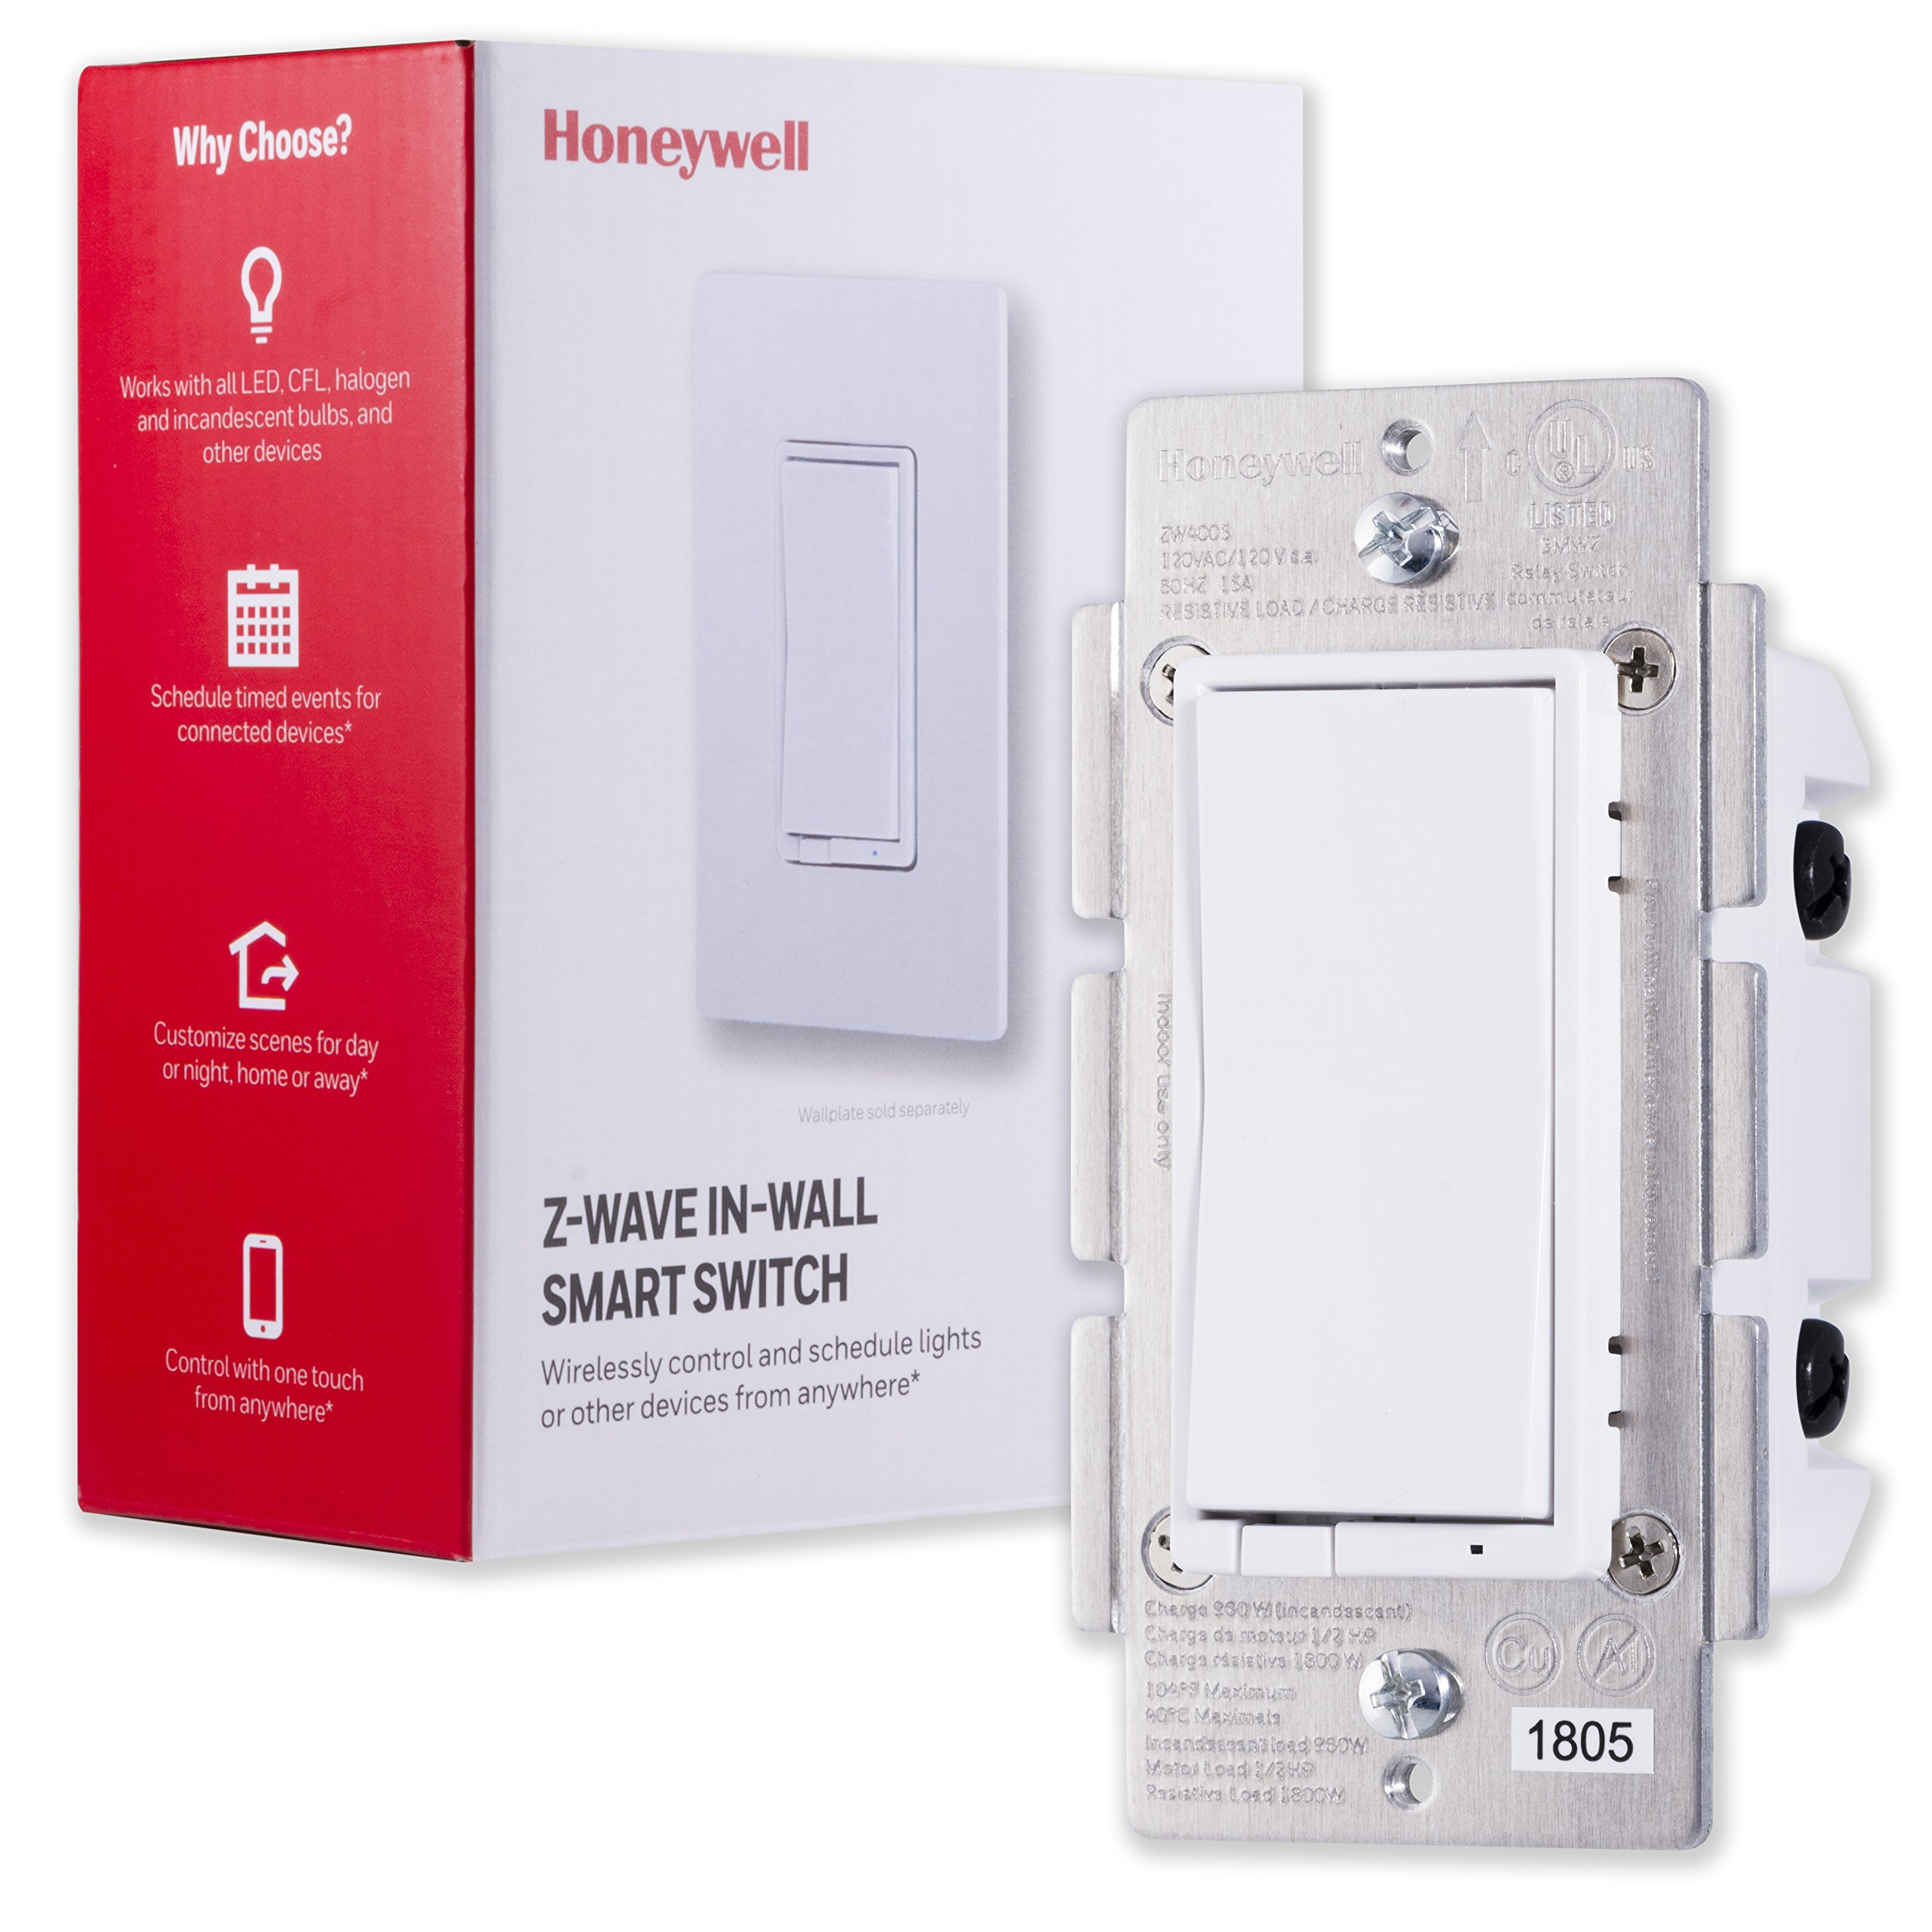 Honeywell Z-Wave Plus On/Off Smart Light Switch, In-Wall Paddle, Interchangeable White & Almond | Built-In Repeater & Range Extender | ZWave Hub Required - SmartThings, Wink, Alexa Compatible, 39348 by Honeywell